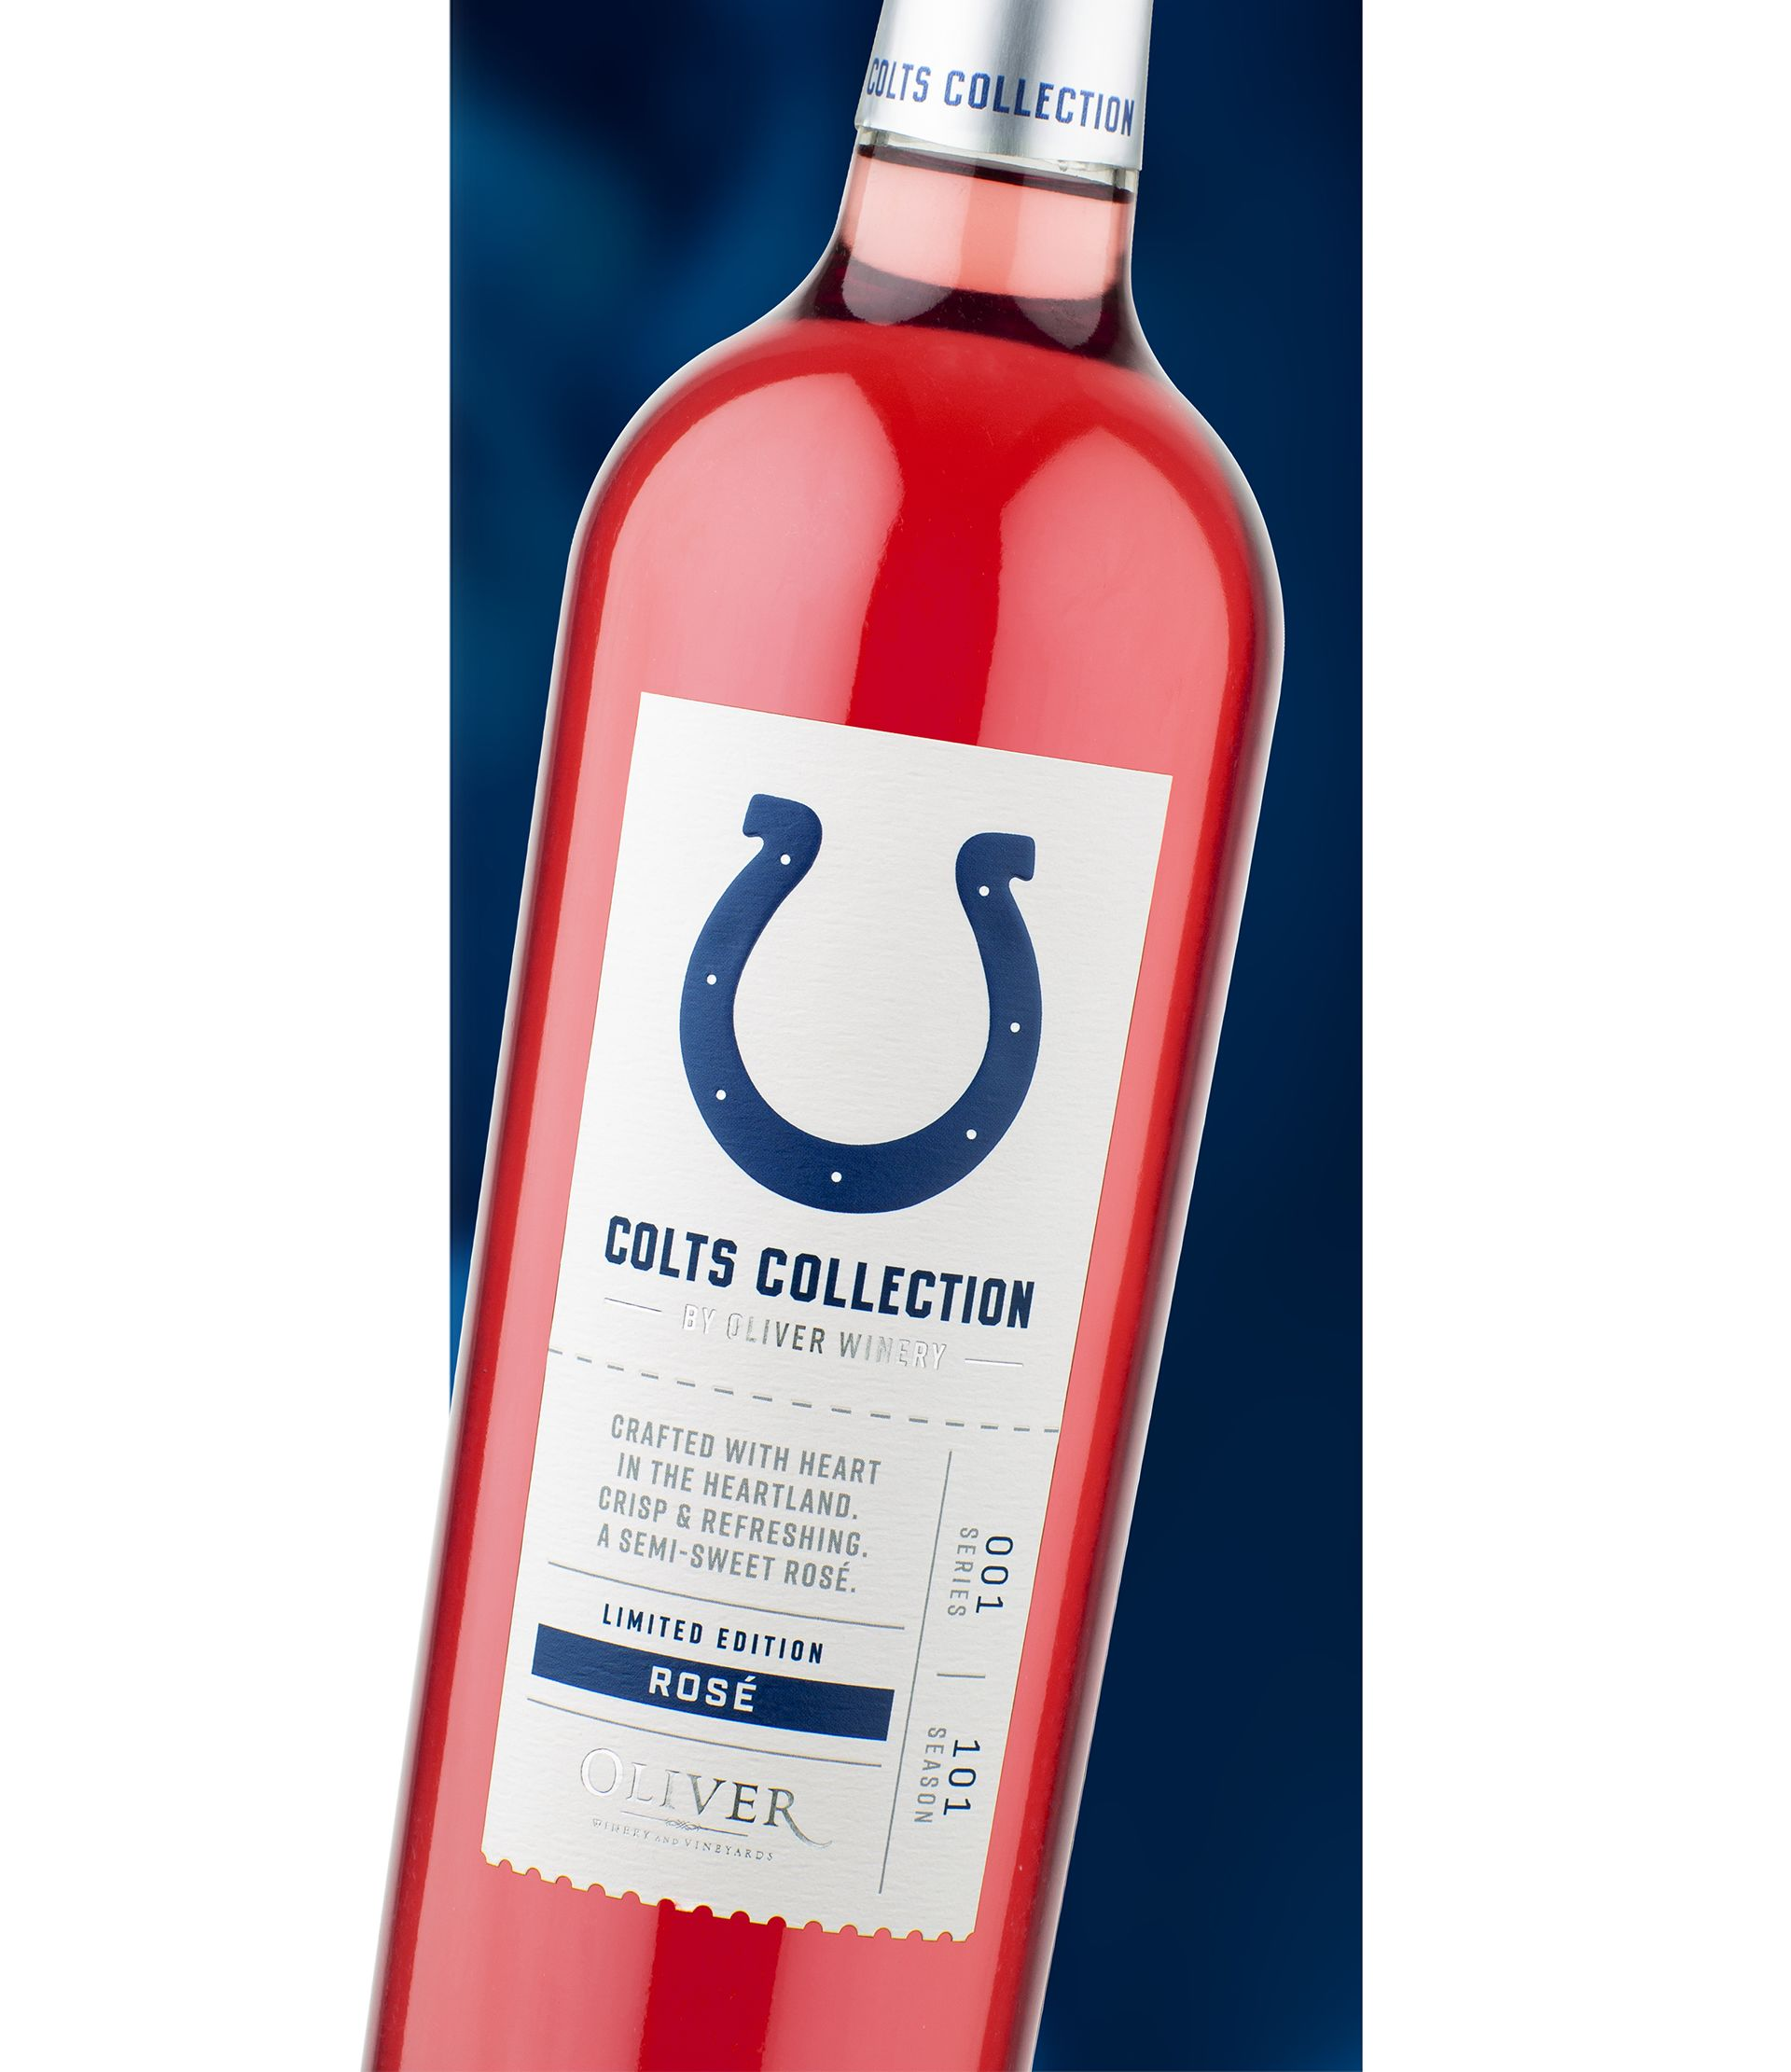 COLTS COLLECTION ROSÉ